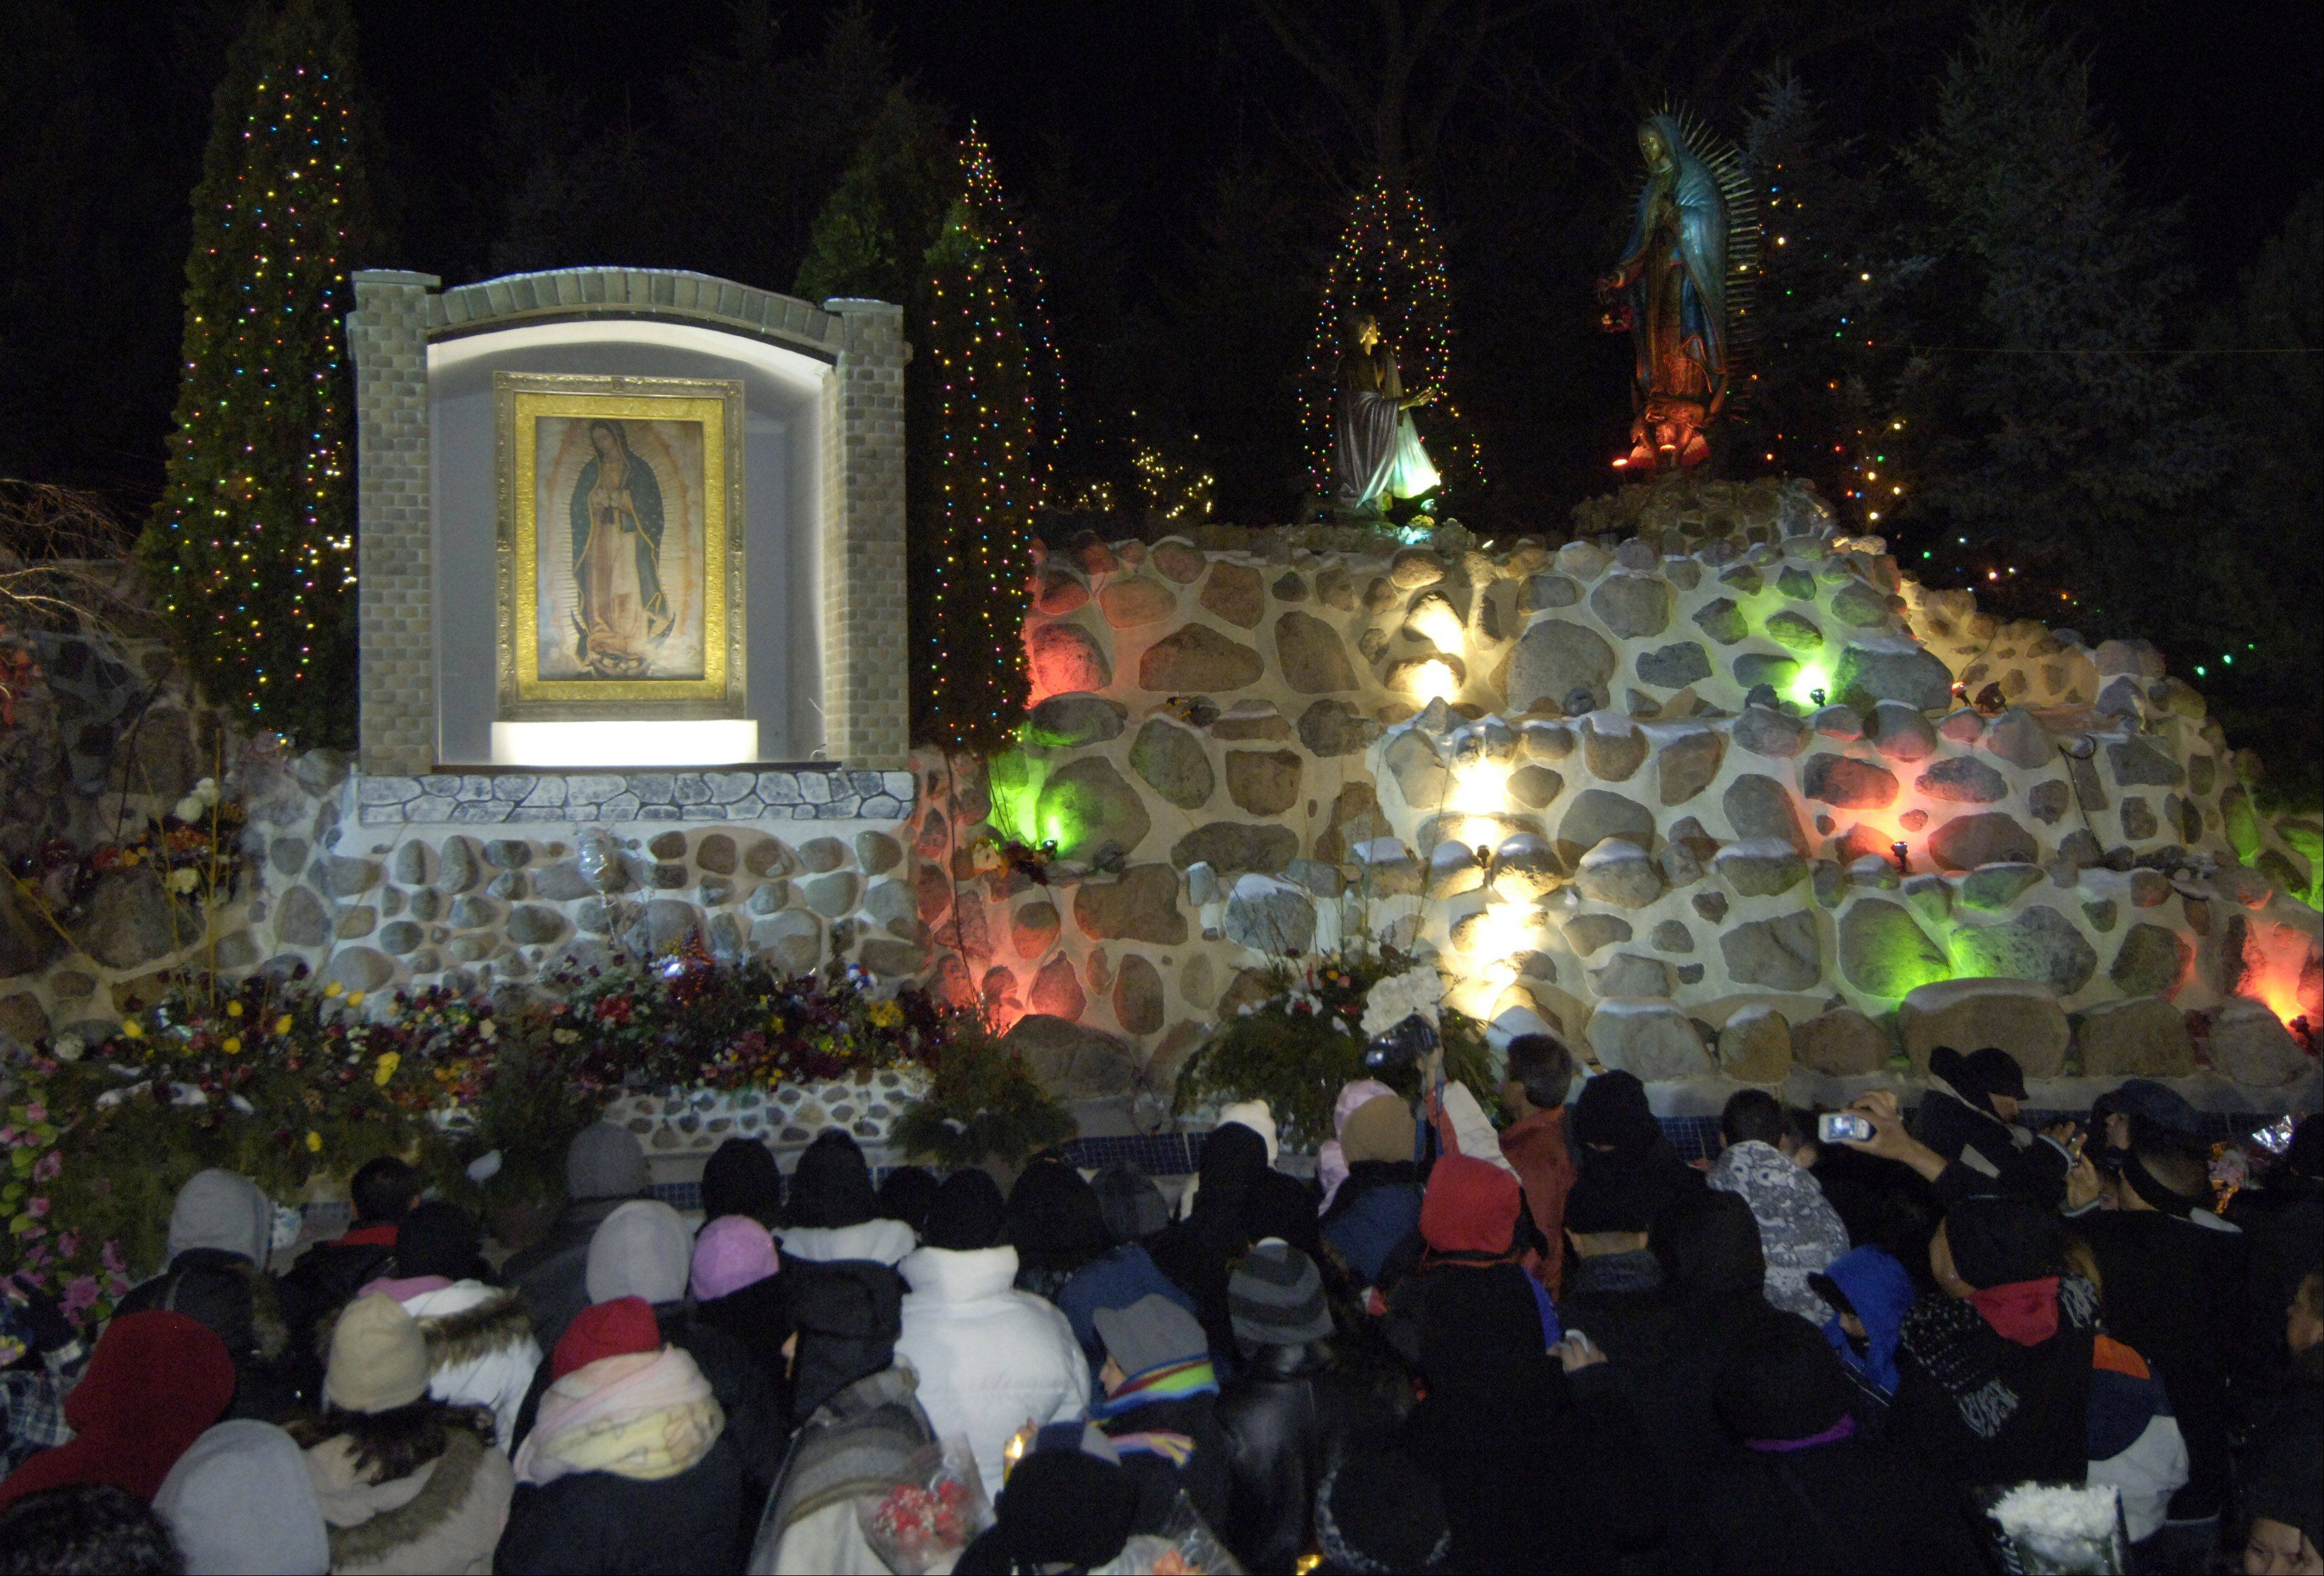 A crowd gathers at the shrine during the first night of the Feast of Our Lady of Guadalupe celebration in 2009 at Maryville in Des Plaines.